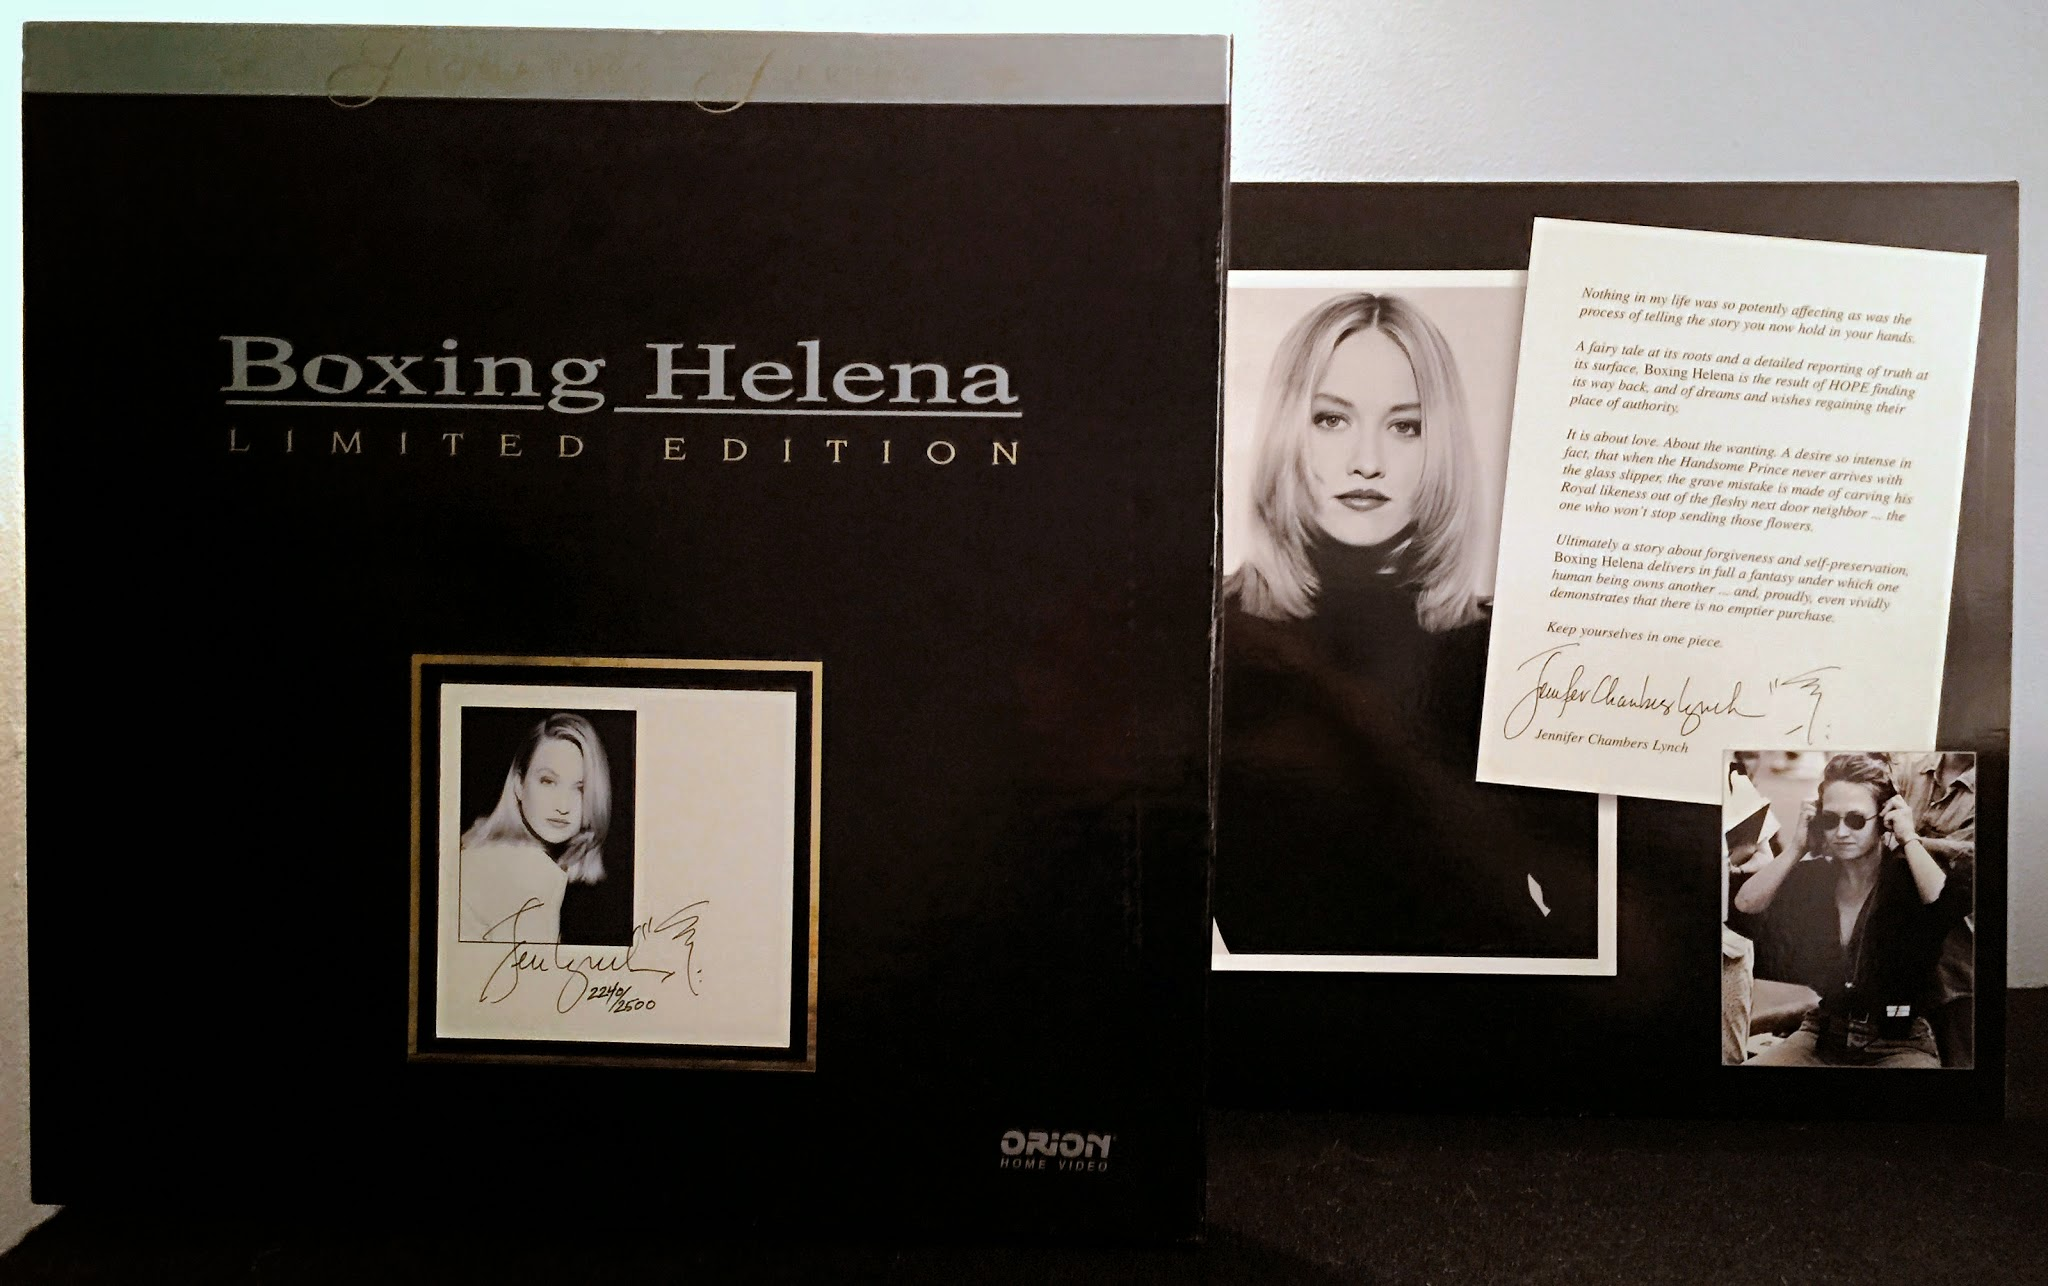 d0304cfa0b7 In 1994, Orion released Boxing Helena on laserdisc, and they released the  director's cut in 1995 as a special edition boxed set. MGM issued the film  on DVD ...